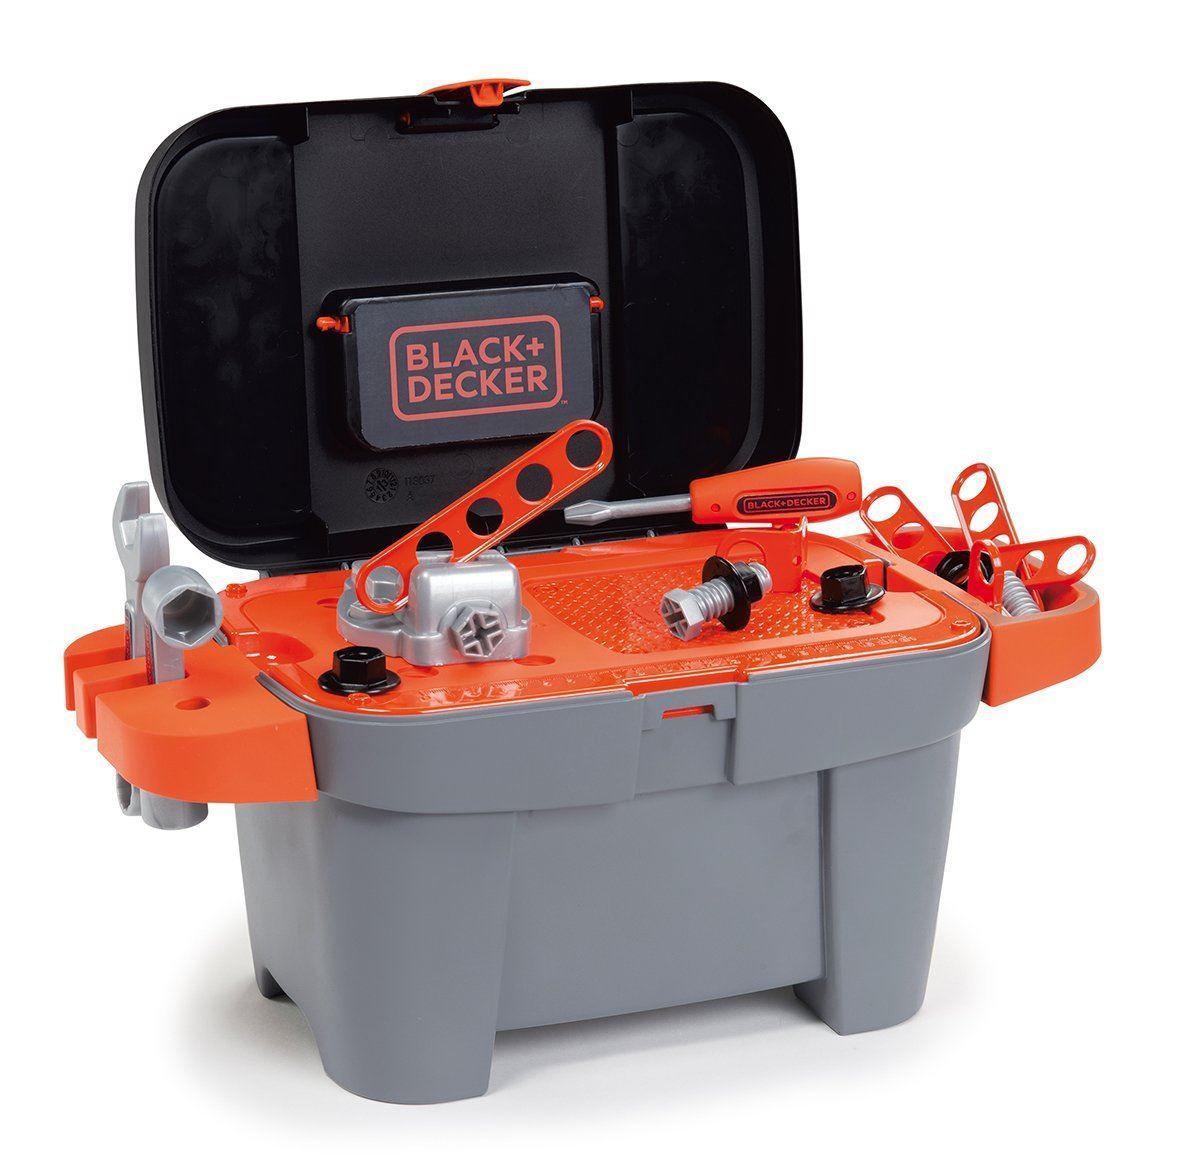 Toy Tool Set : Smoby black and decker tooly childrens toy tool box kids